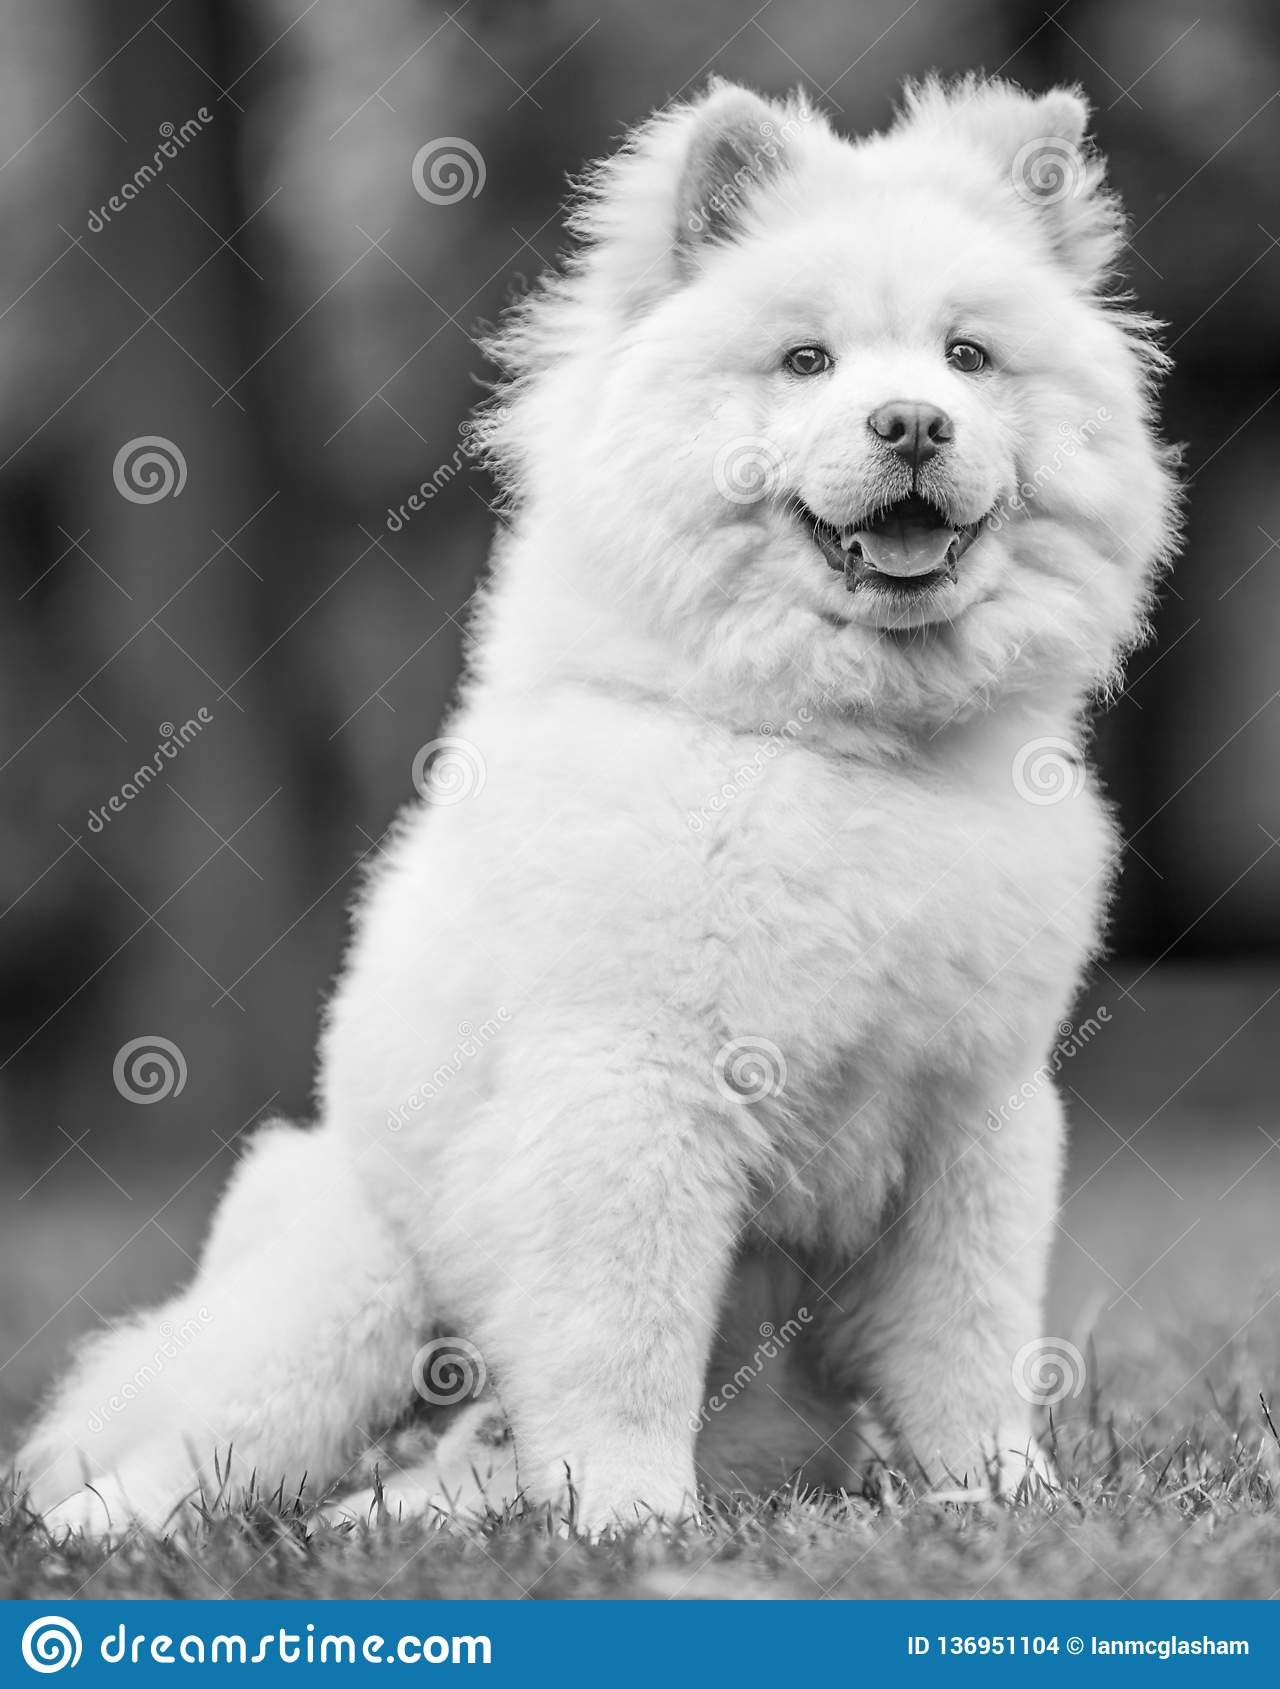 A White Samoyed Puppy Sitting In A Field Smiling Stock Photo Image Of Long Smiling 136951104